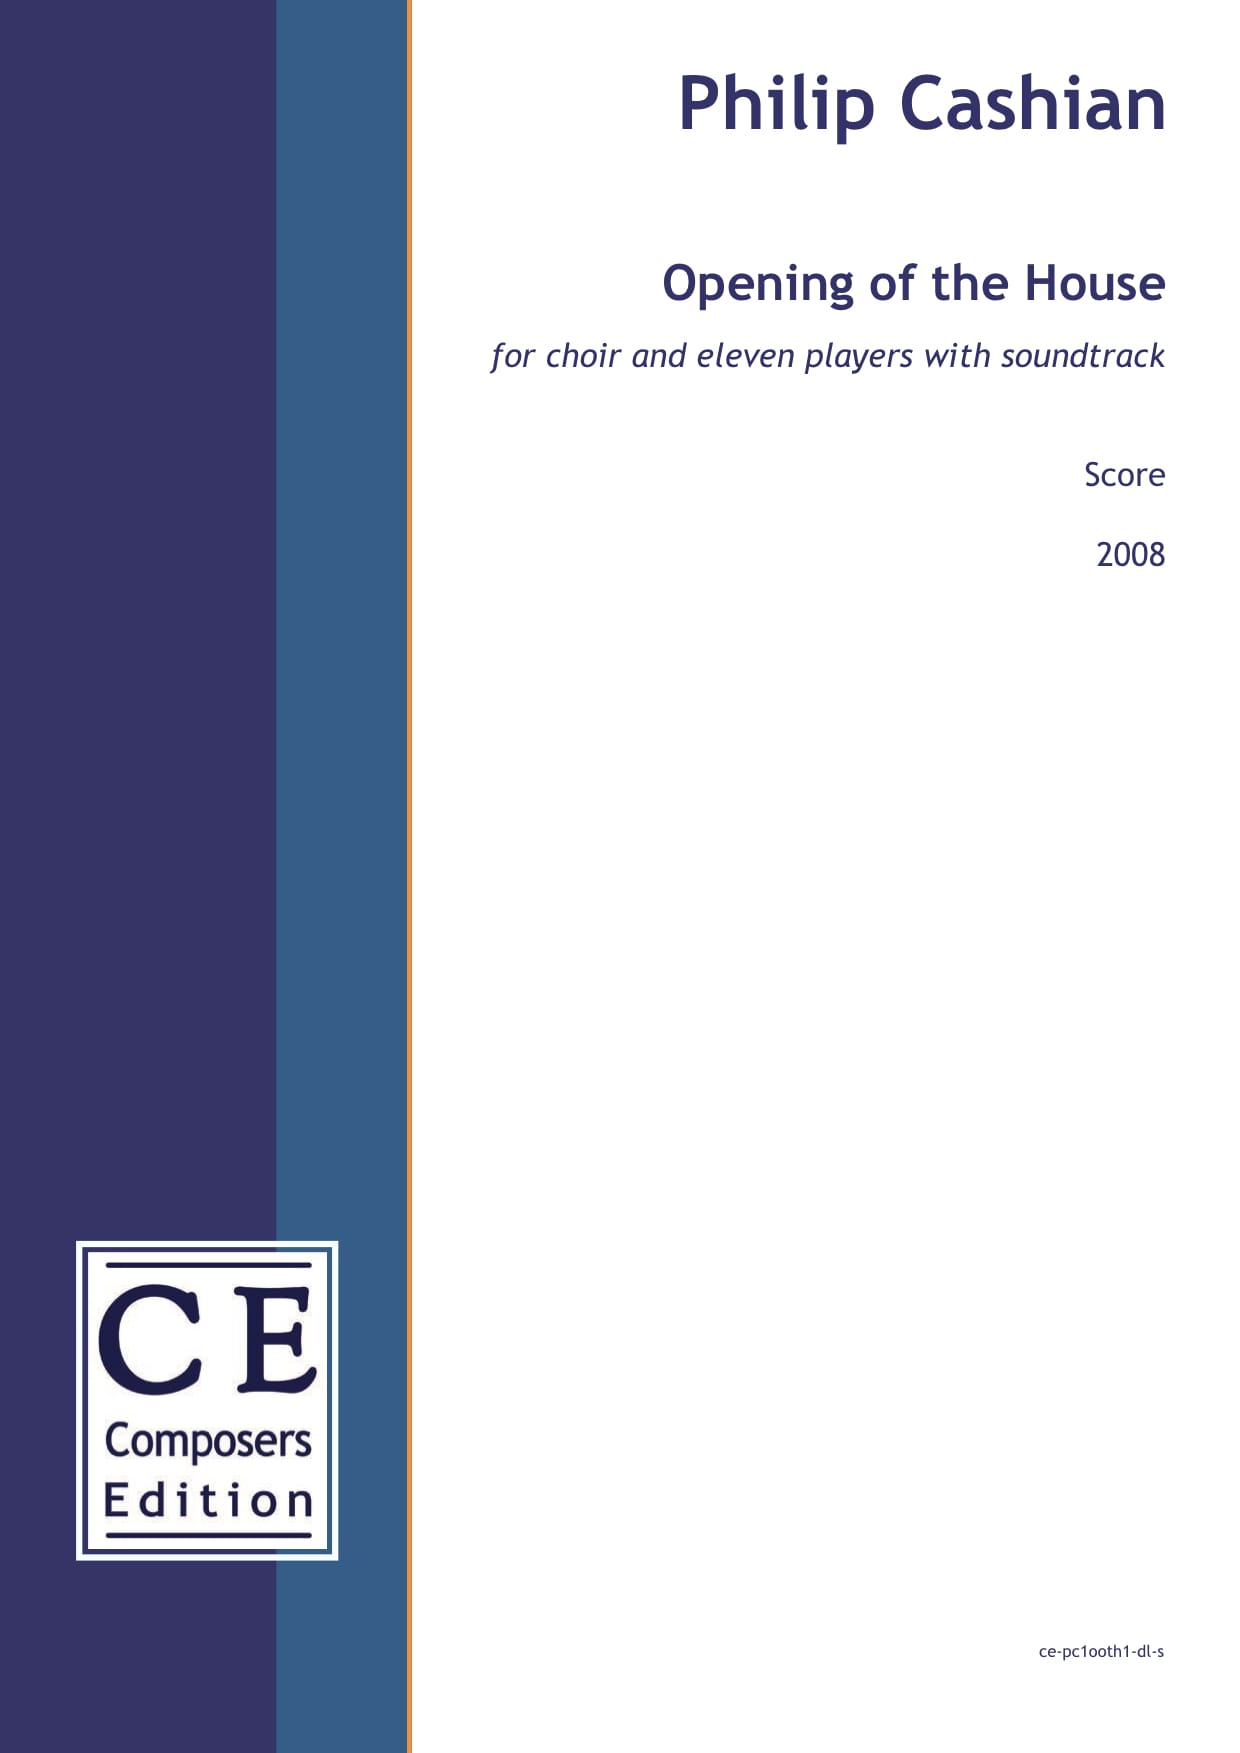 Philip Cashian: Opening of the House for choir and eleven players with soundtrack